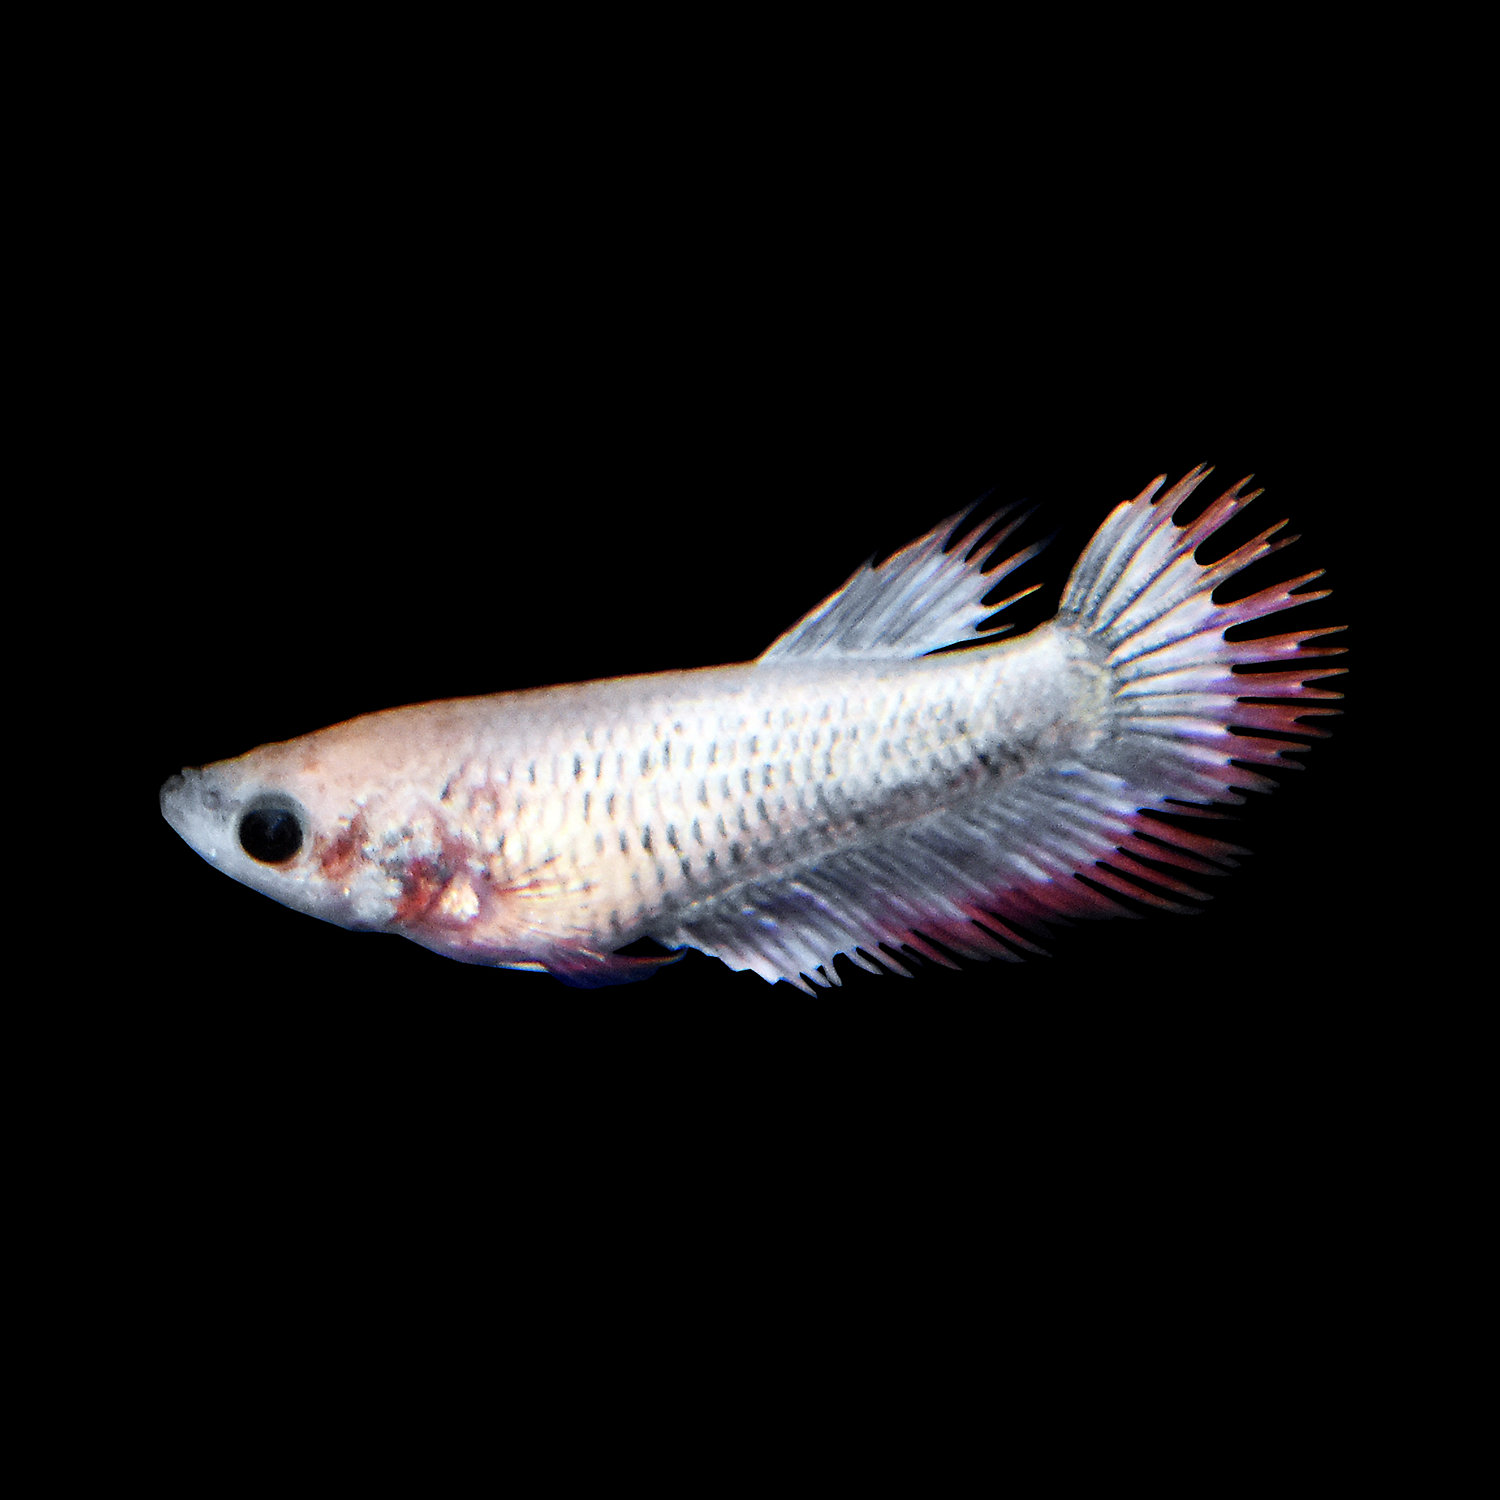 Female Crowntail Betta Extra Large Siamese Fighting Fish X Large